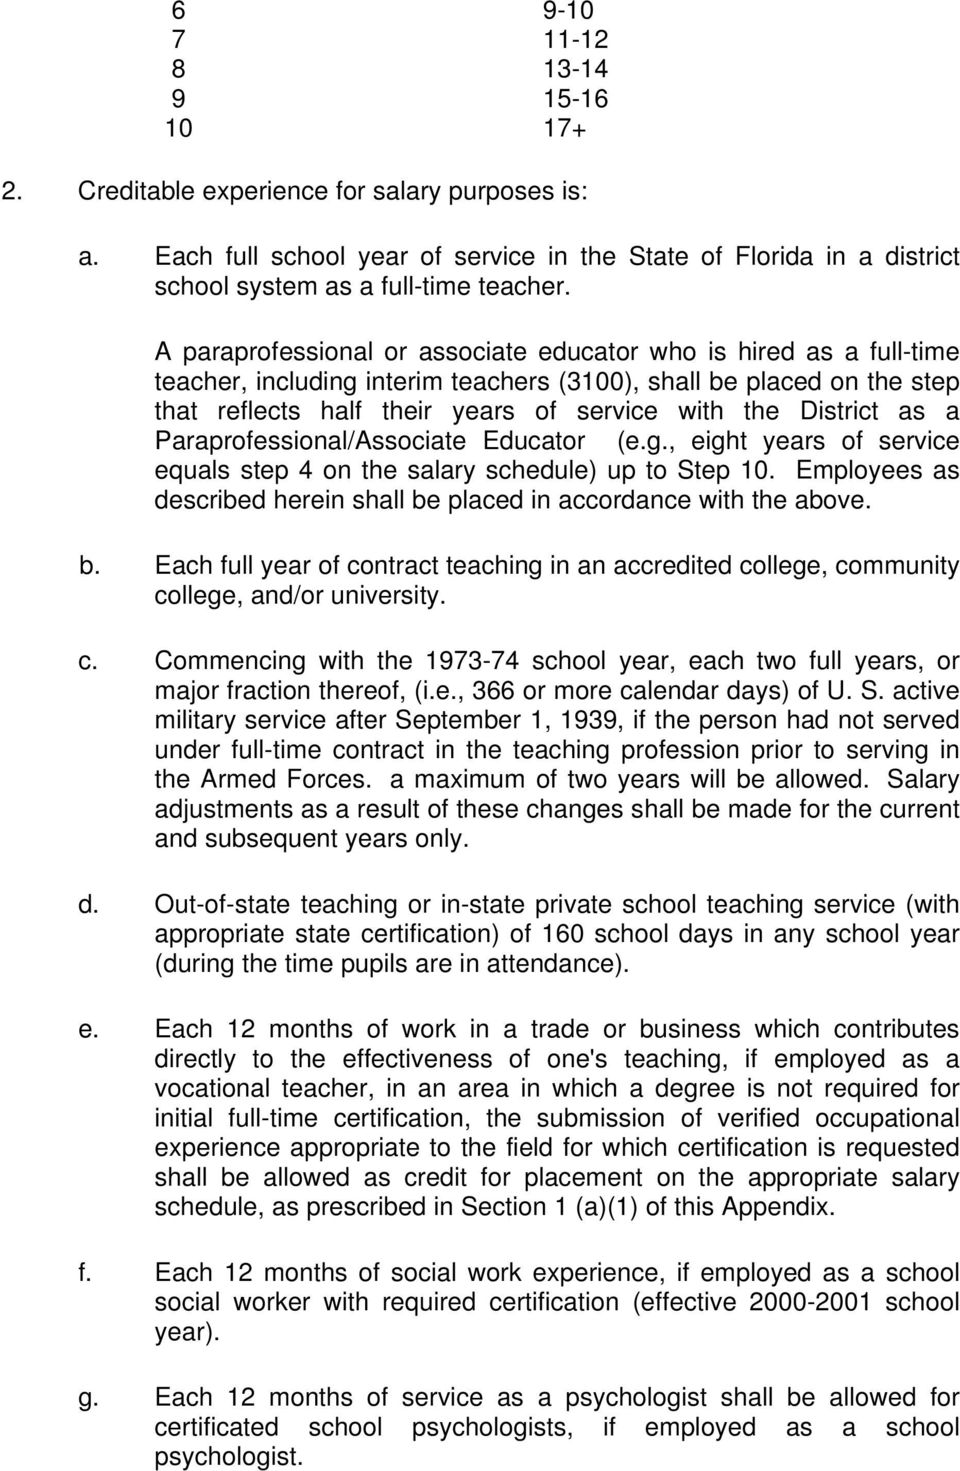 District as a Paraprofessional/Associate Educator (e.g., eight years of service equals step 4 on the salary schedule) up to Step 10.